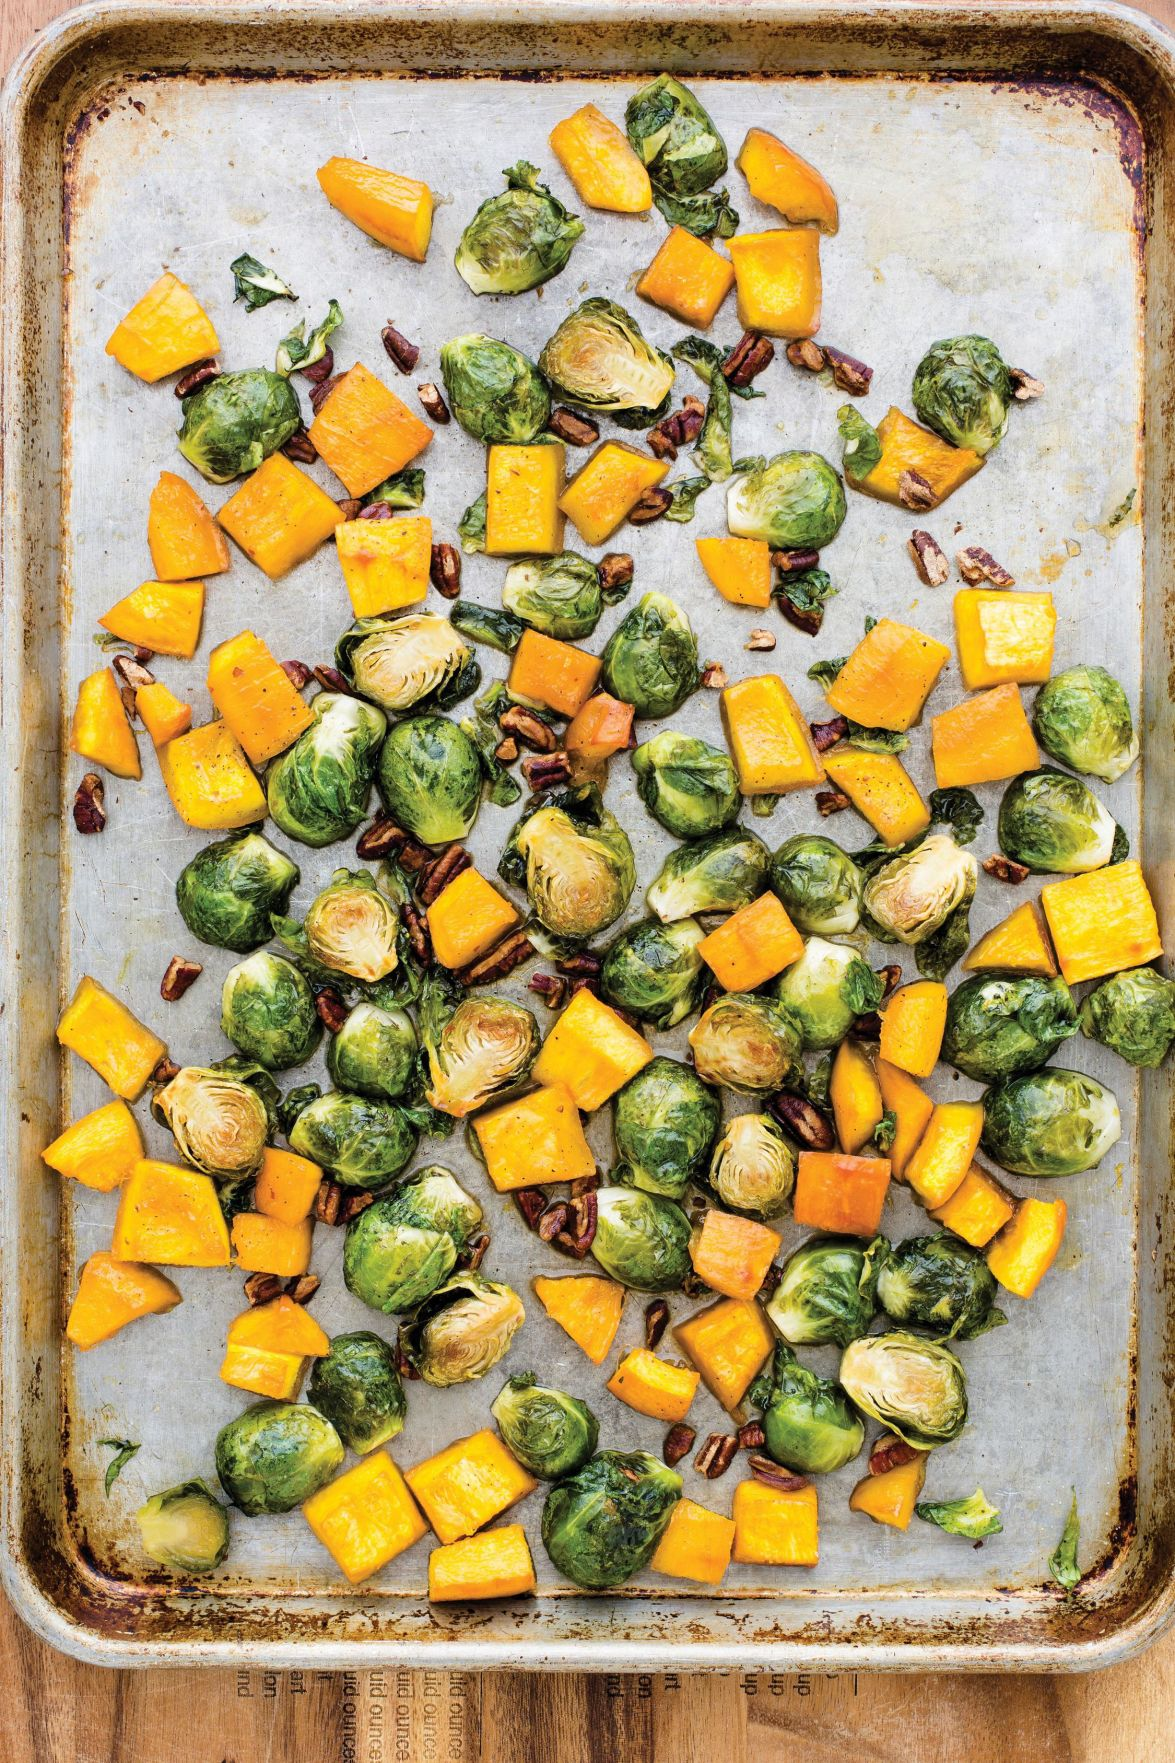 Stephen Fries: Pumpkin a blank canvas waiting for your culinary creativity